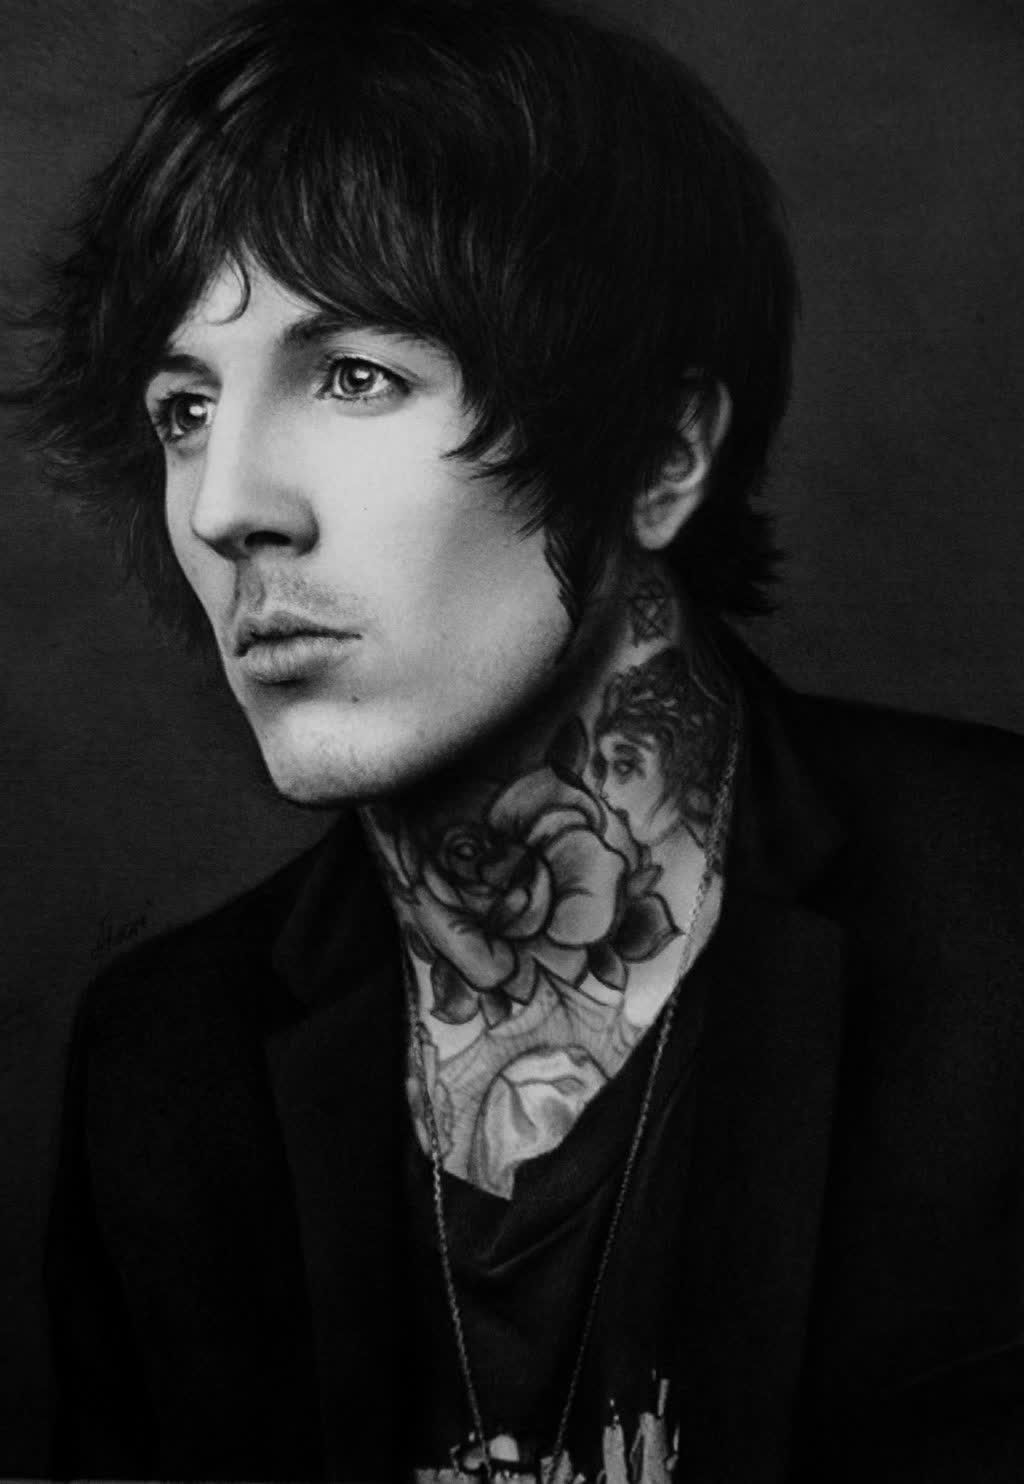 Michael Jordan Wallpaper Hd Oliver Sykes Bio Age Height Weight Net Worth Facts